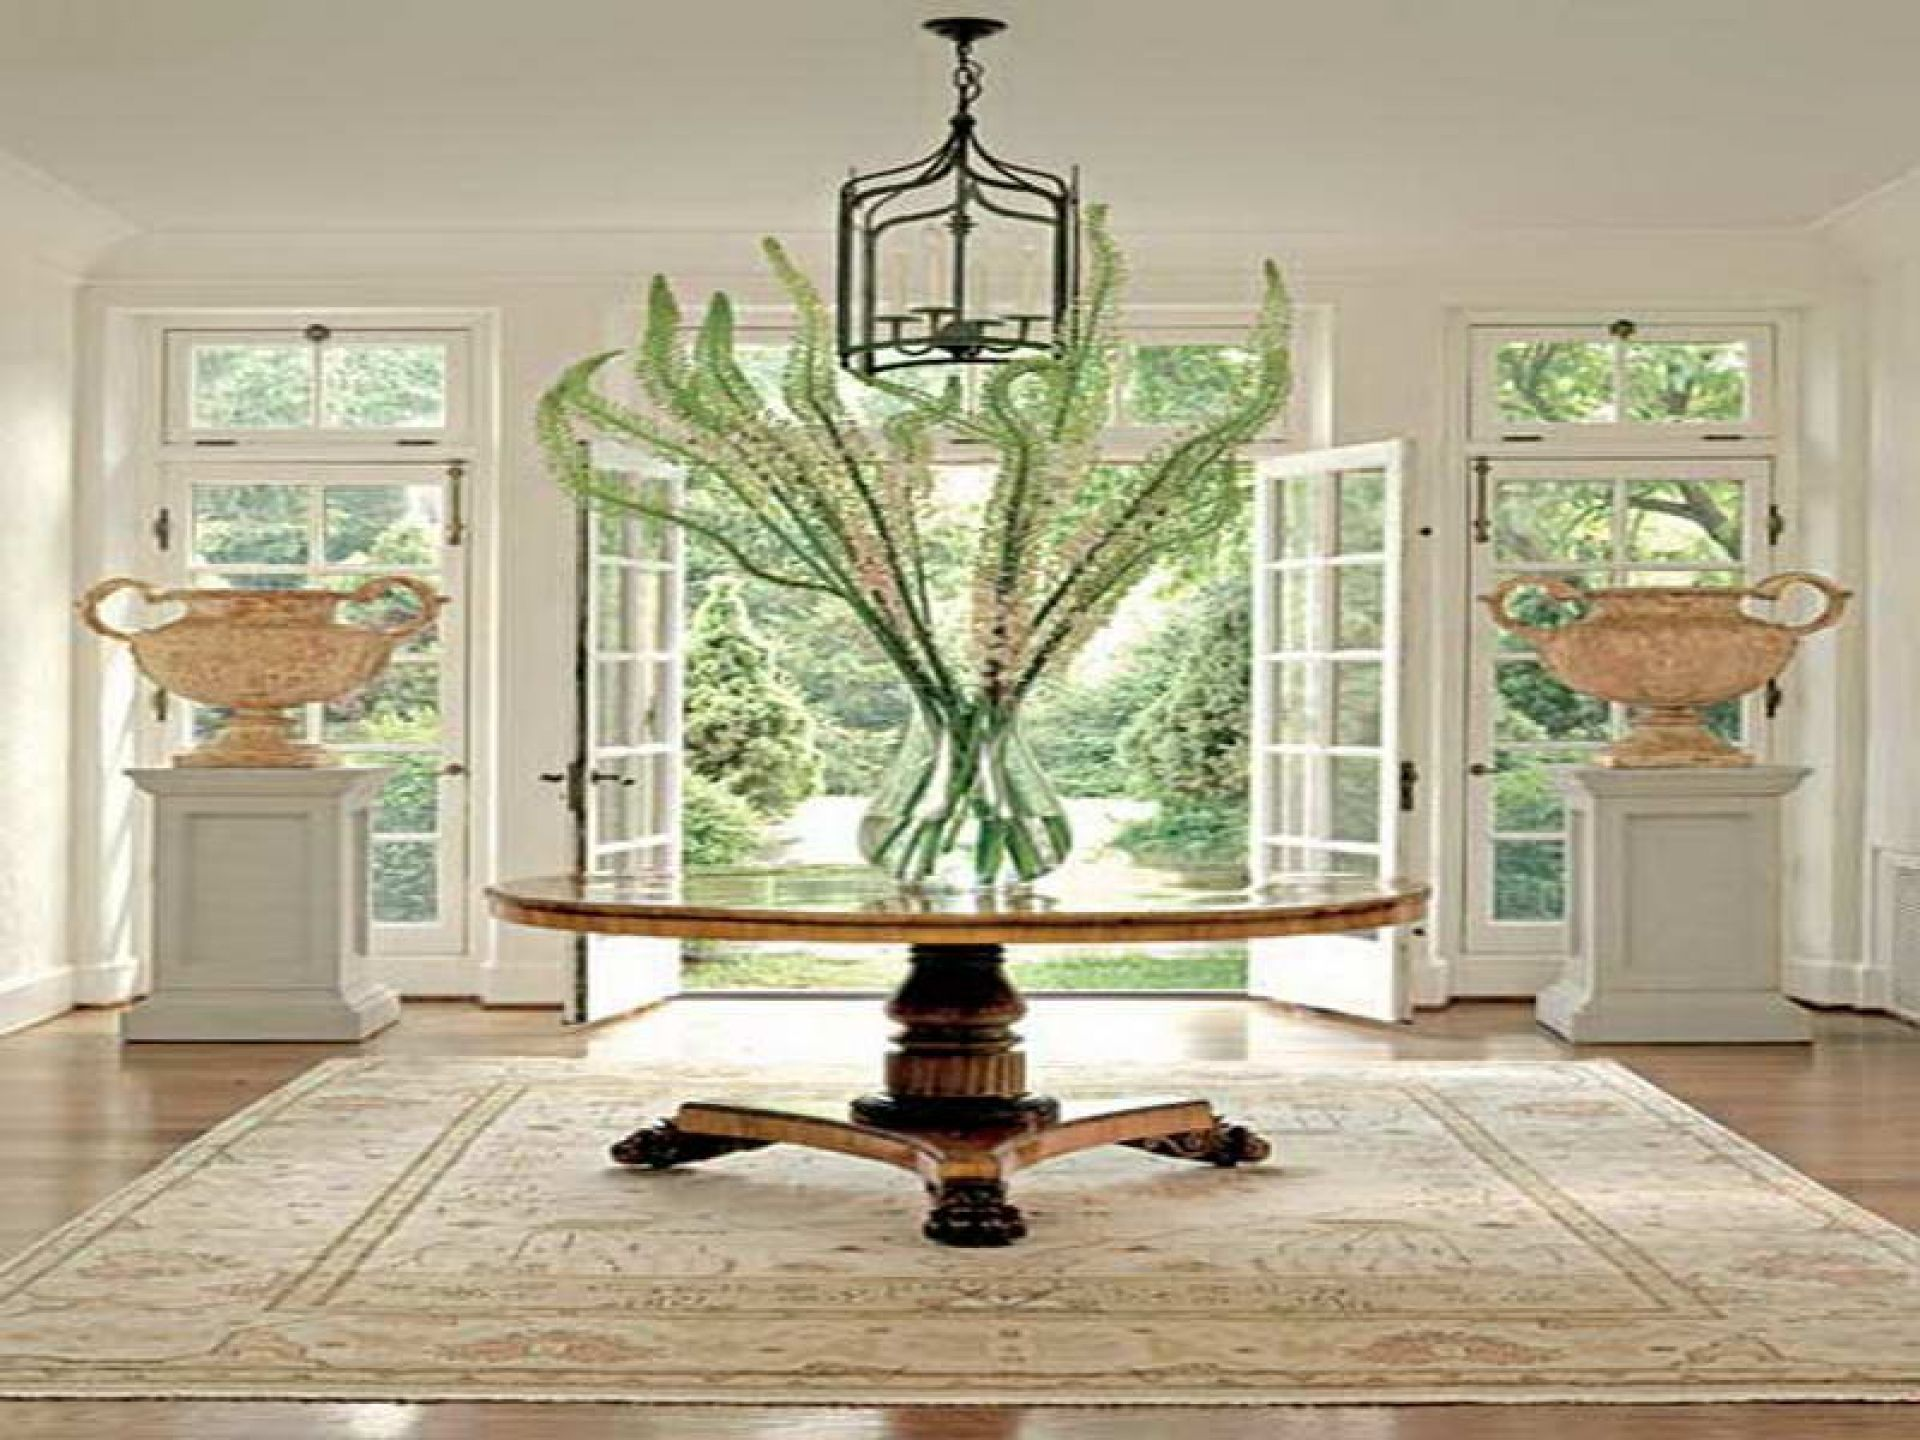 Interior Ideas Unique Plant In Glass Vase Over Rounded Pedestal